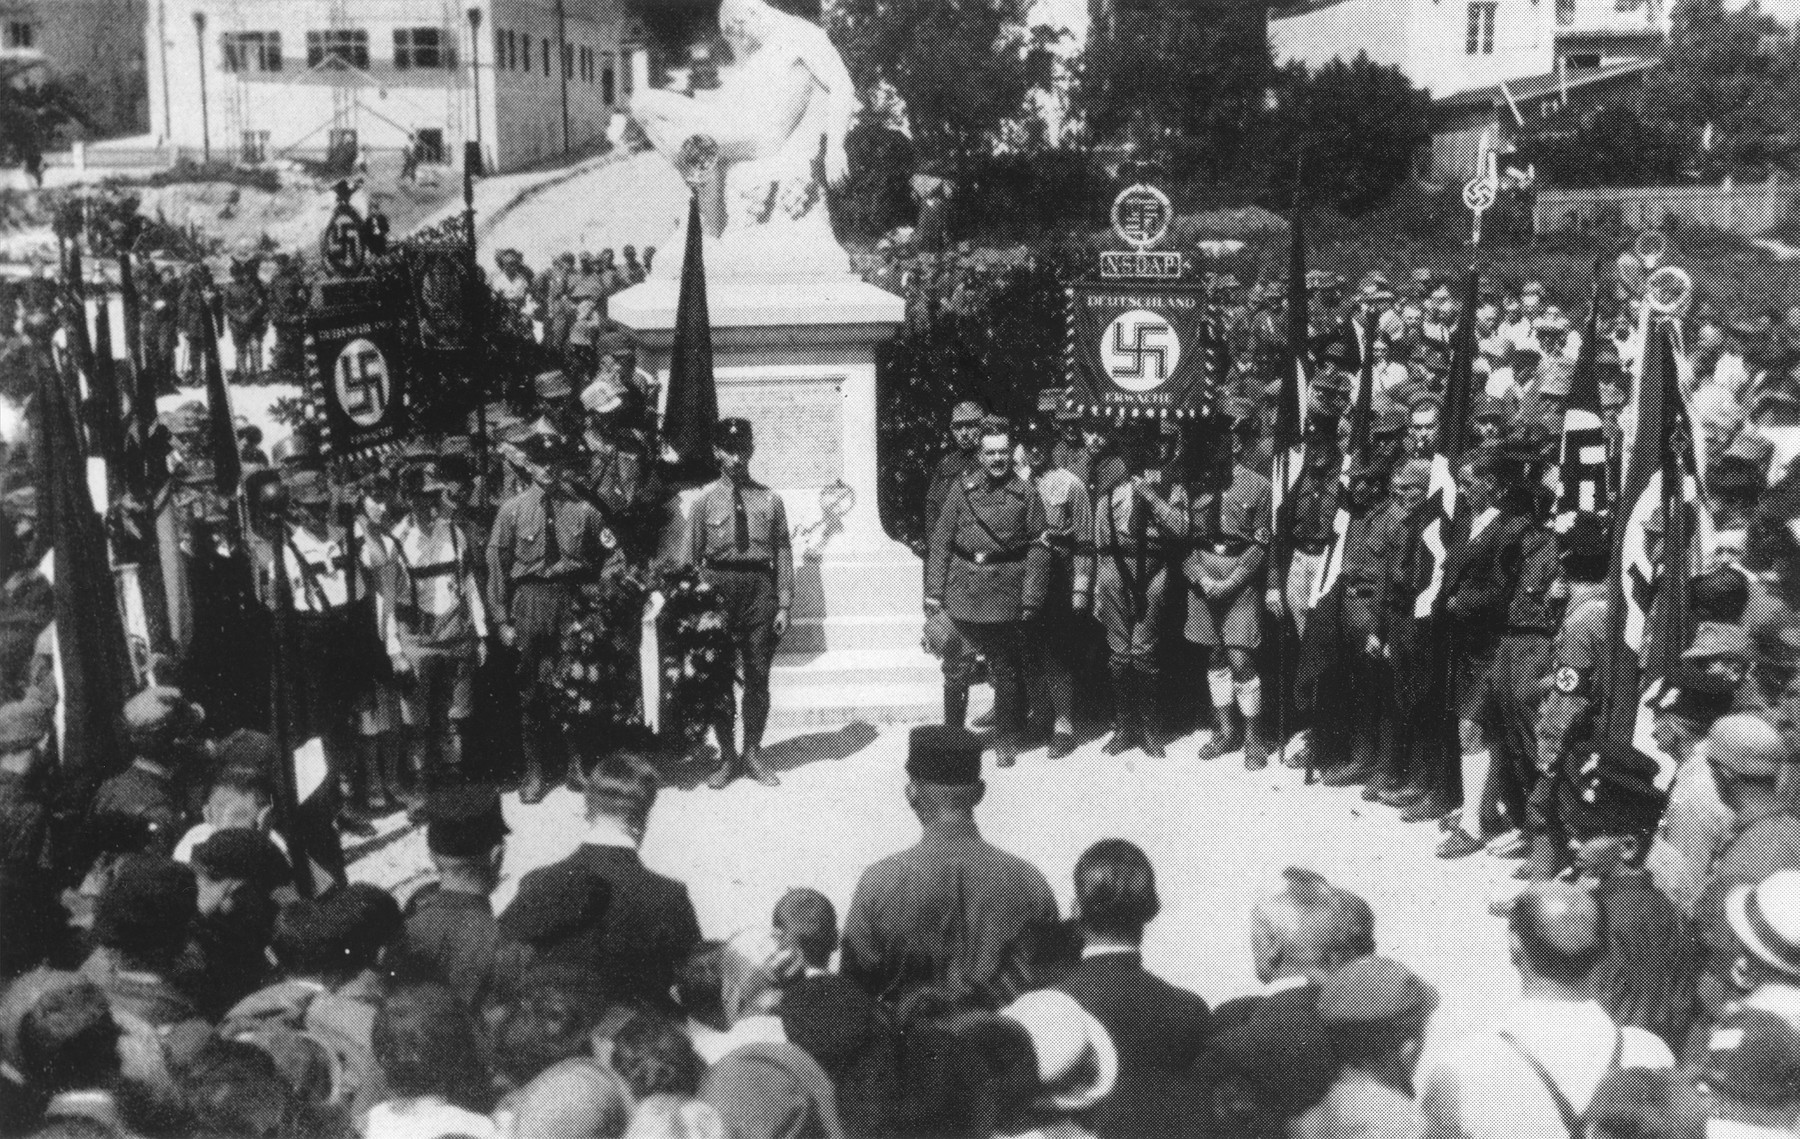 On Gautag [District Day] SA members attend a memorial gathering in front of a monument in Starnberg.